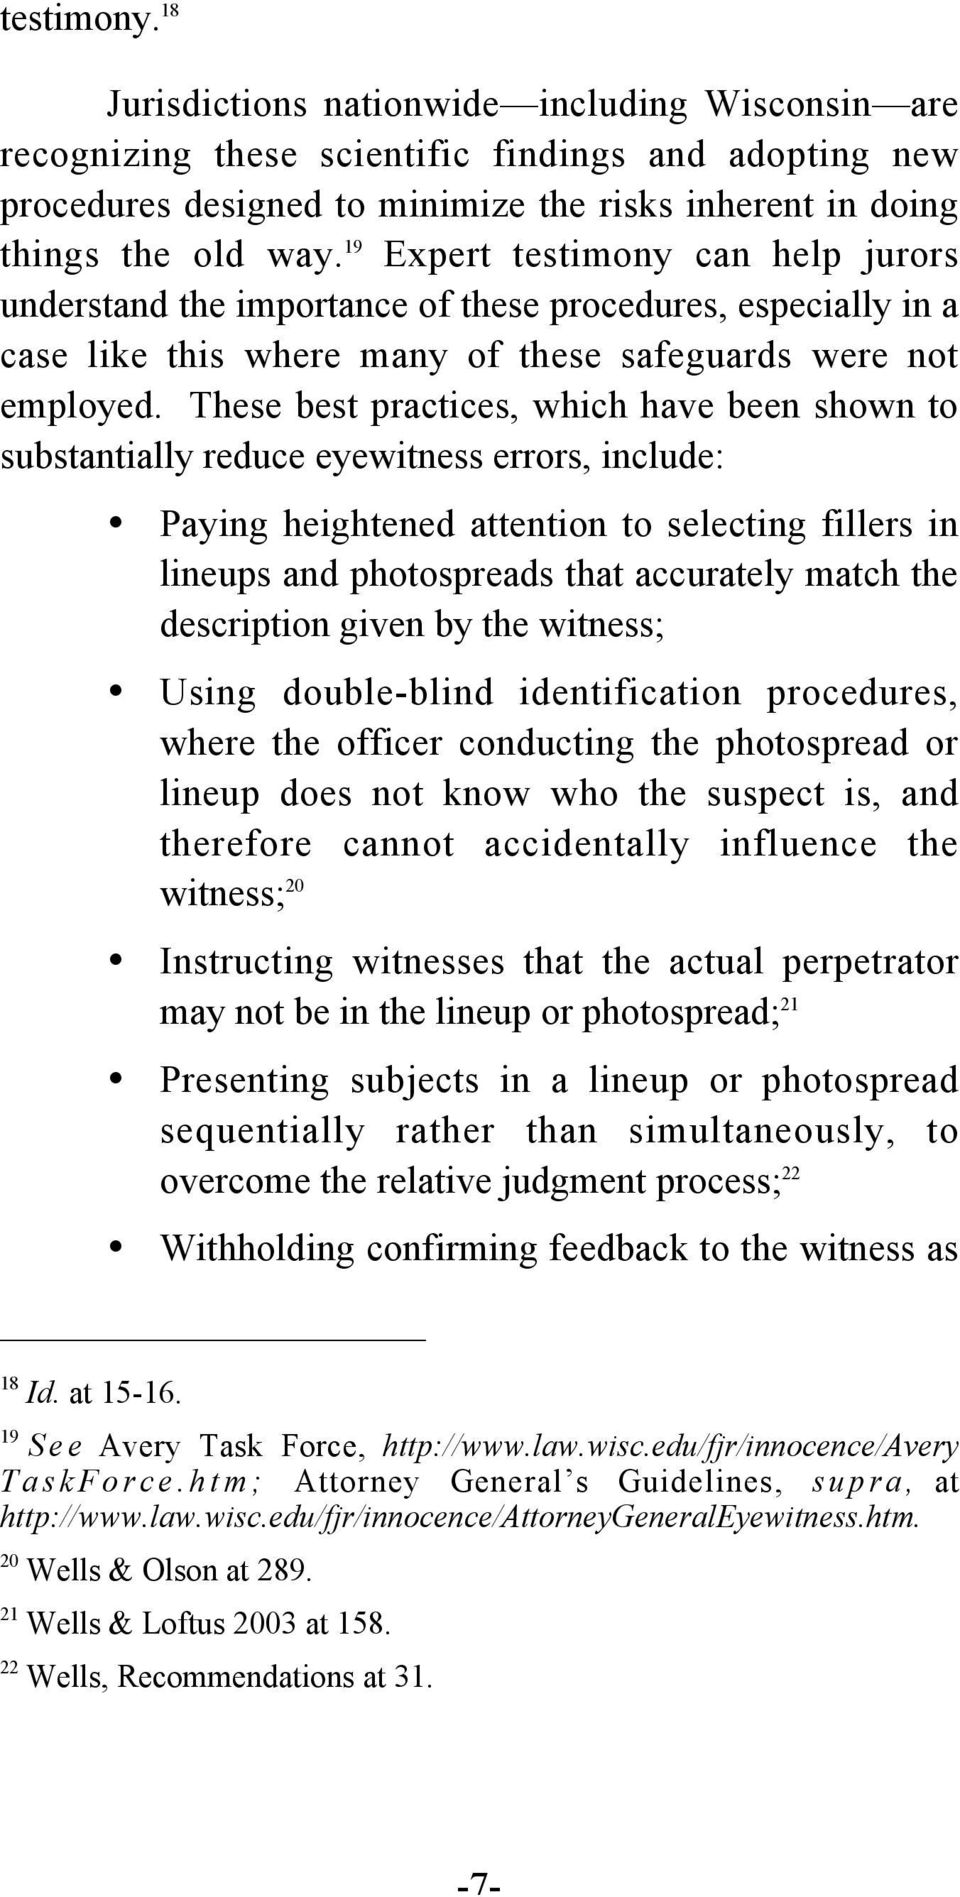 These best practices, which have been shown to substantially reduce eyewitness errors, include: Paying heightened attention to selecting fillers in lineups and photospreads that accurately match the